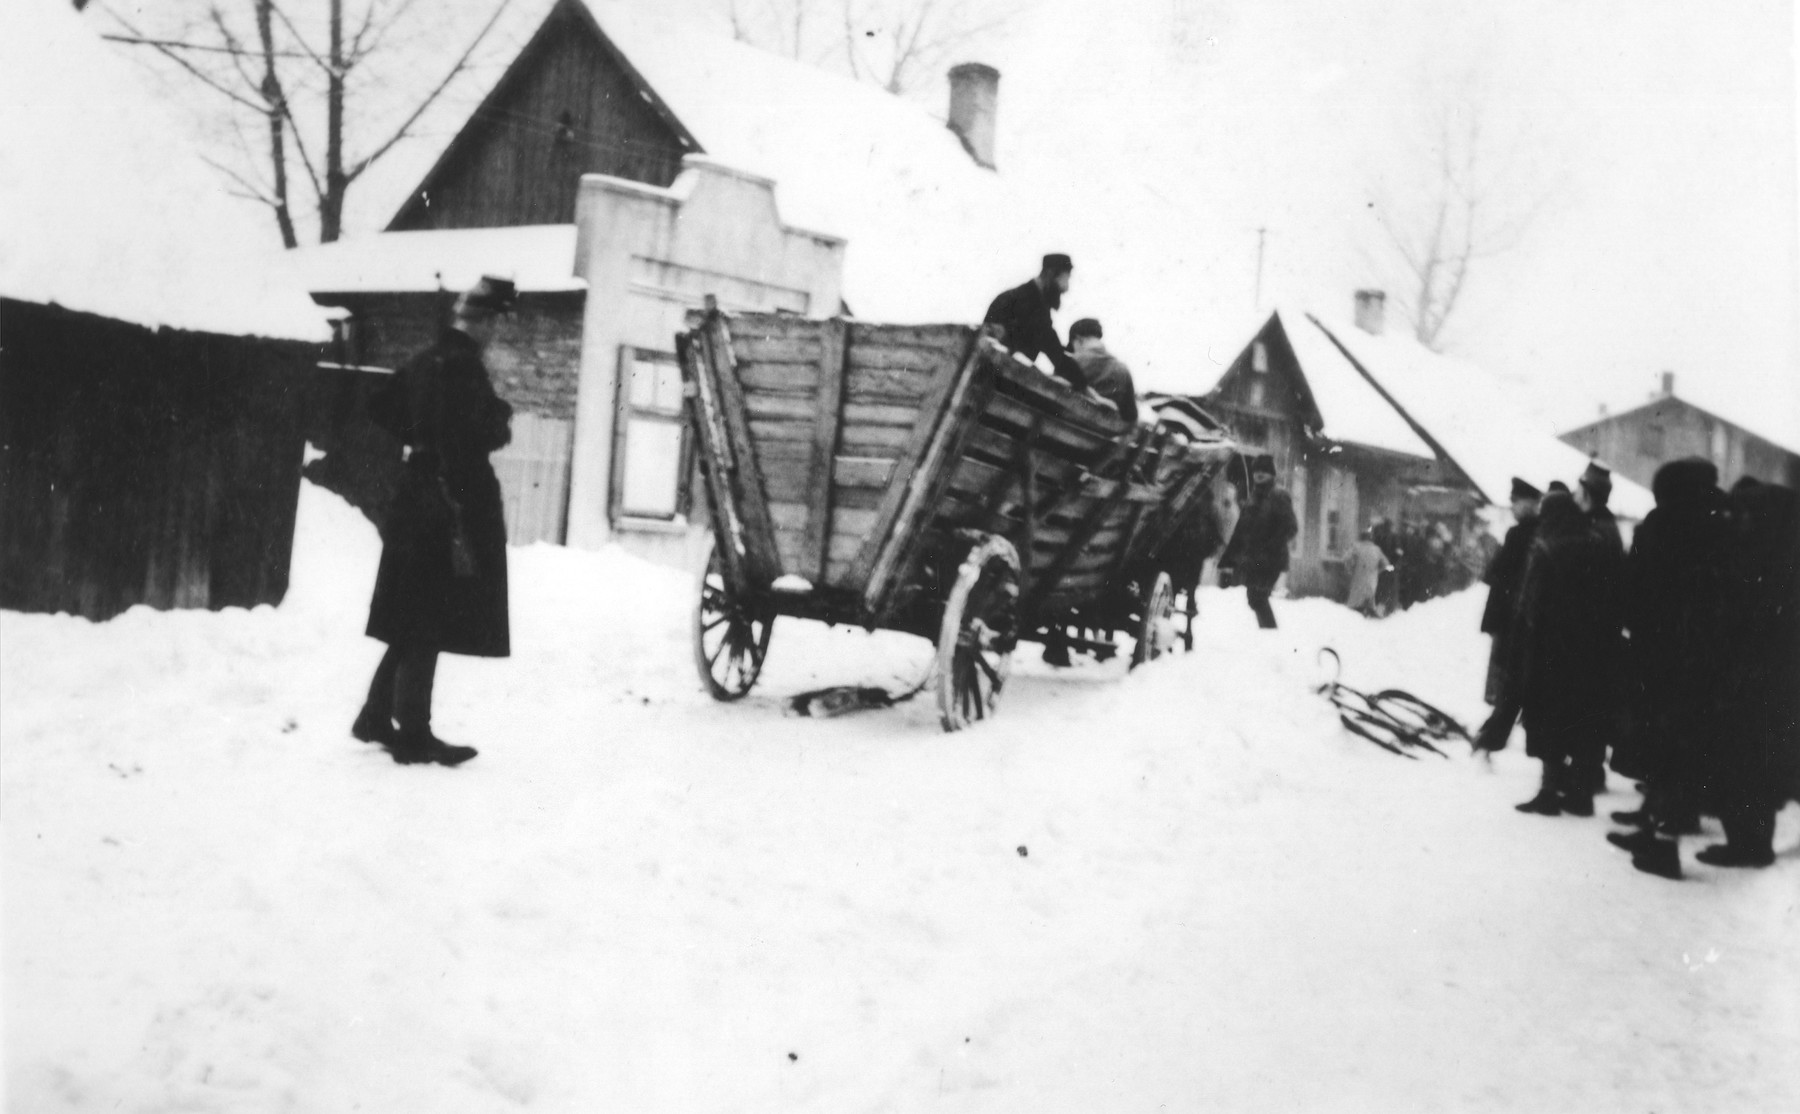 Jews drive a wagon along a snow covered street in the Zawiercie ghetto.